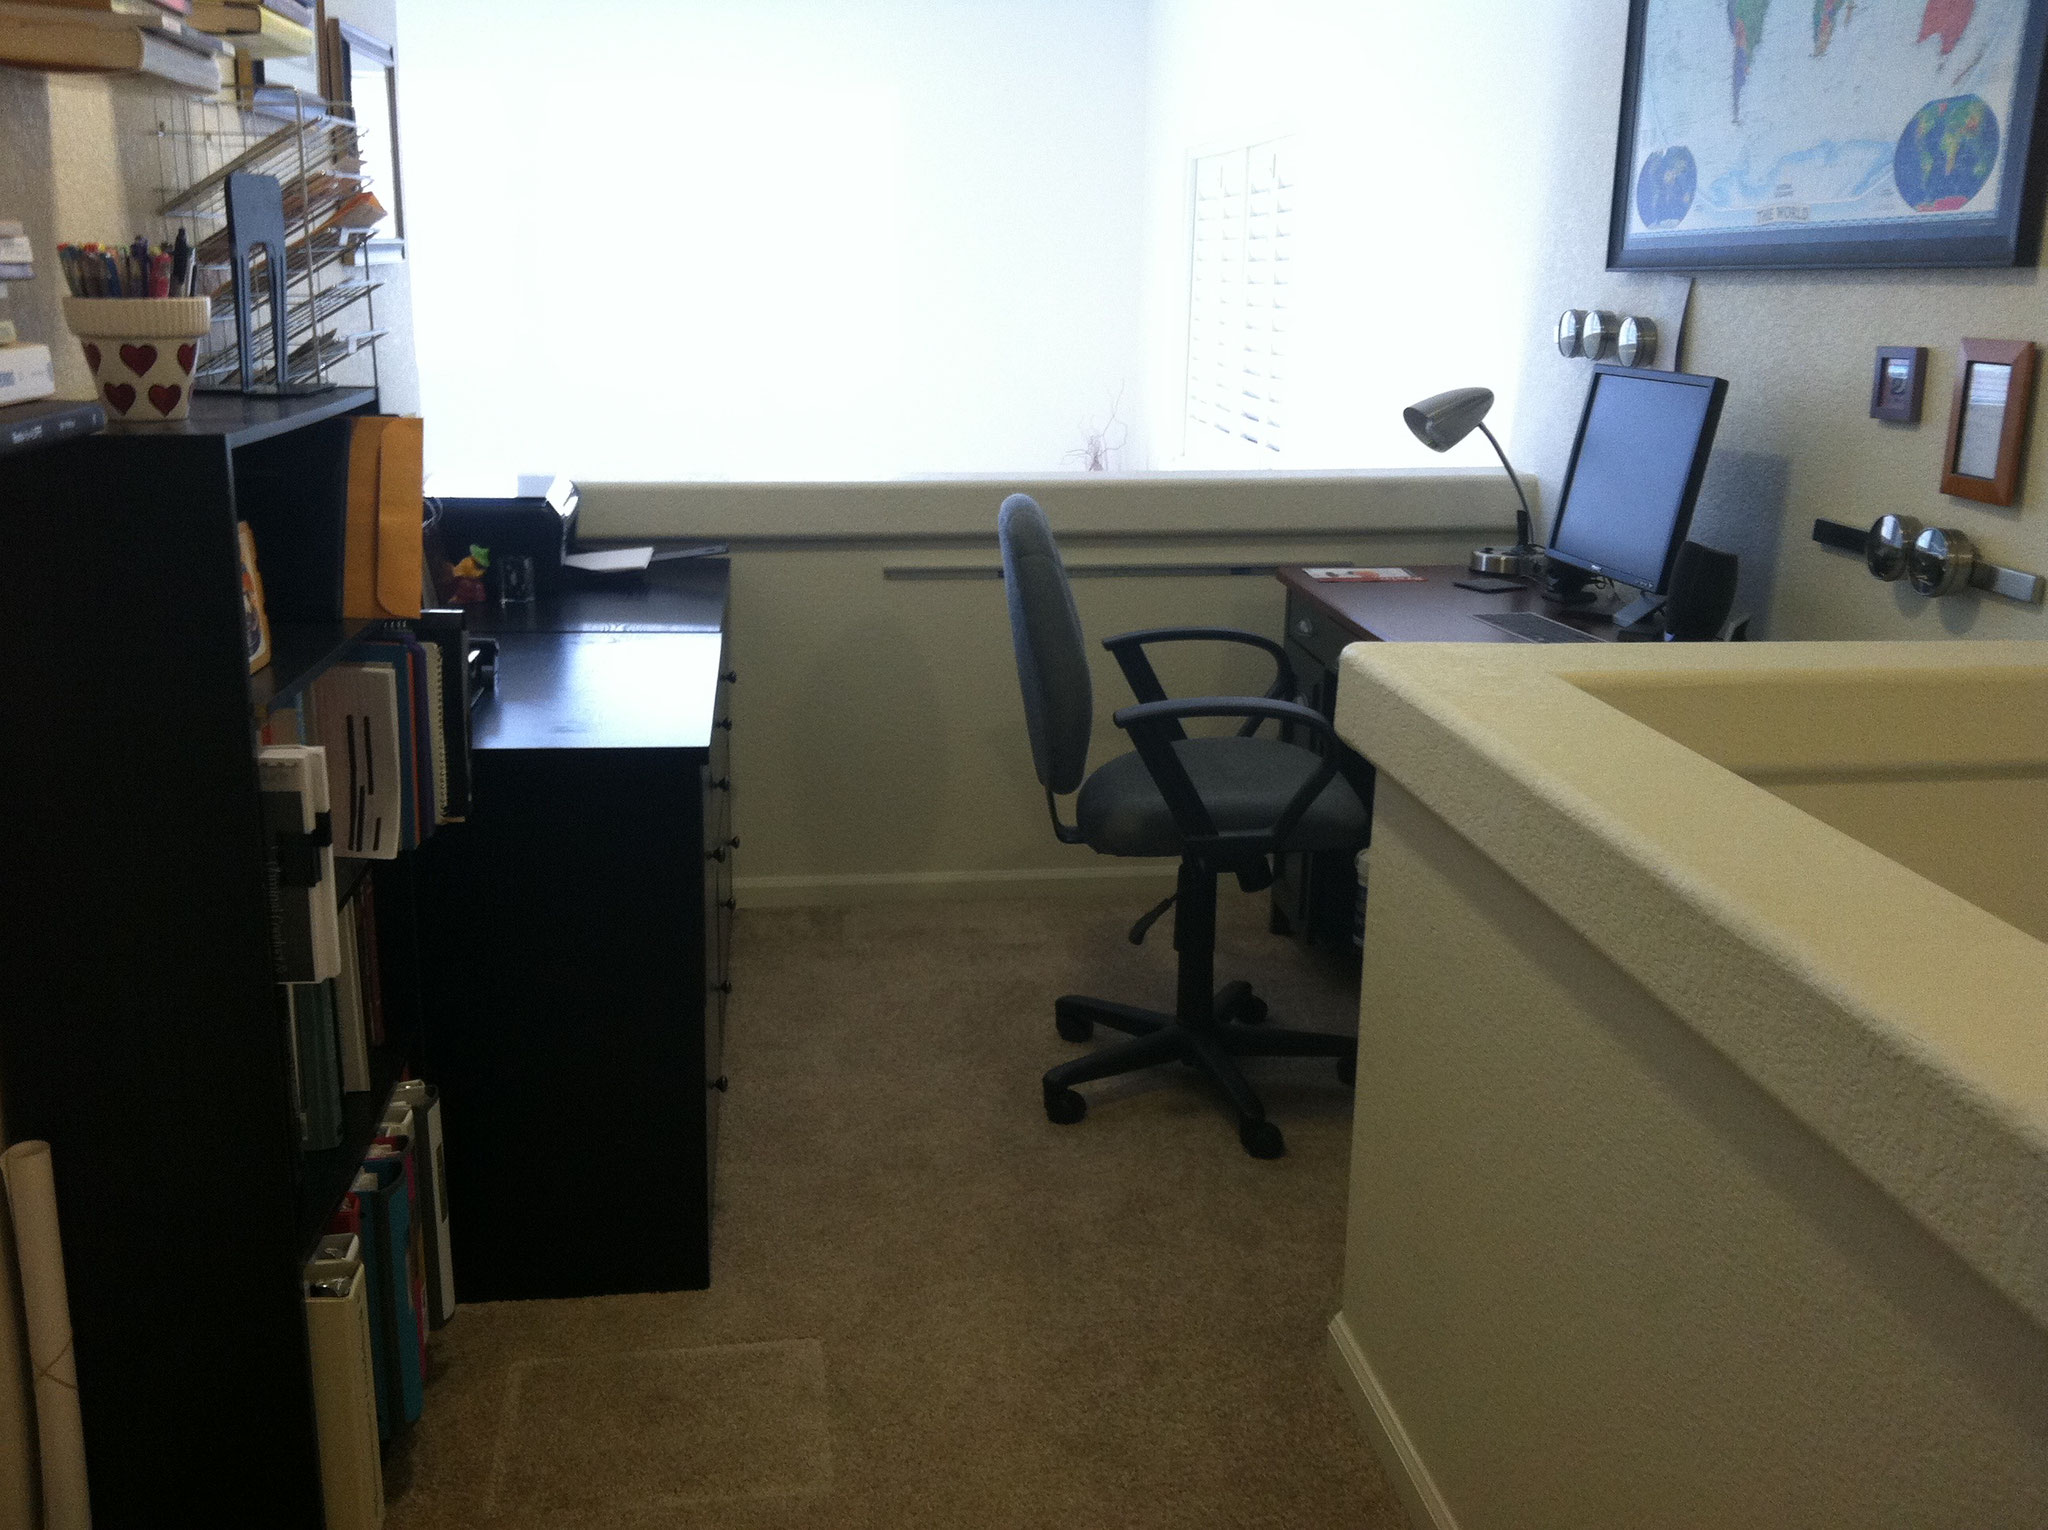 .... and inviting office.